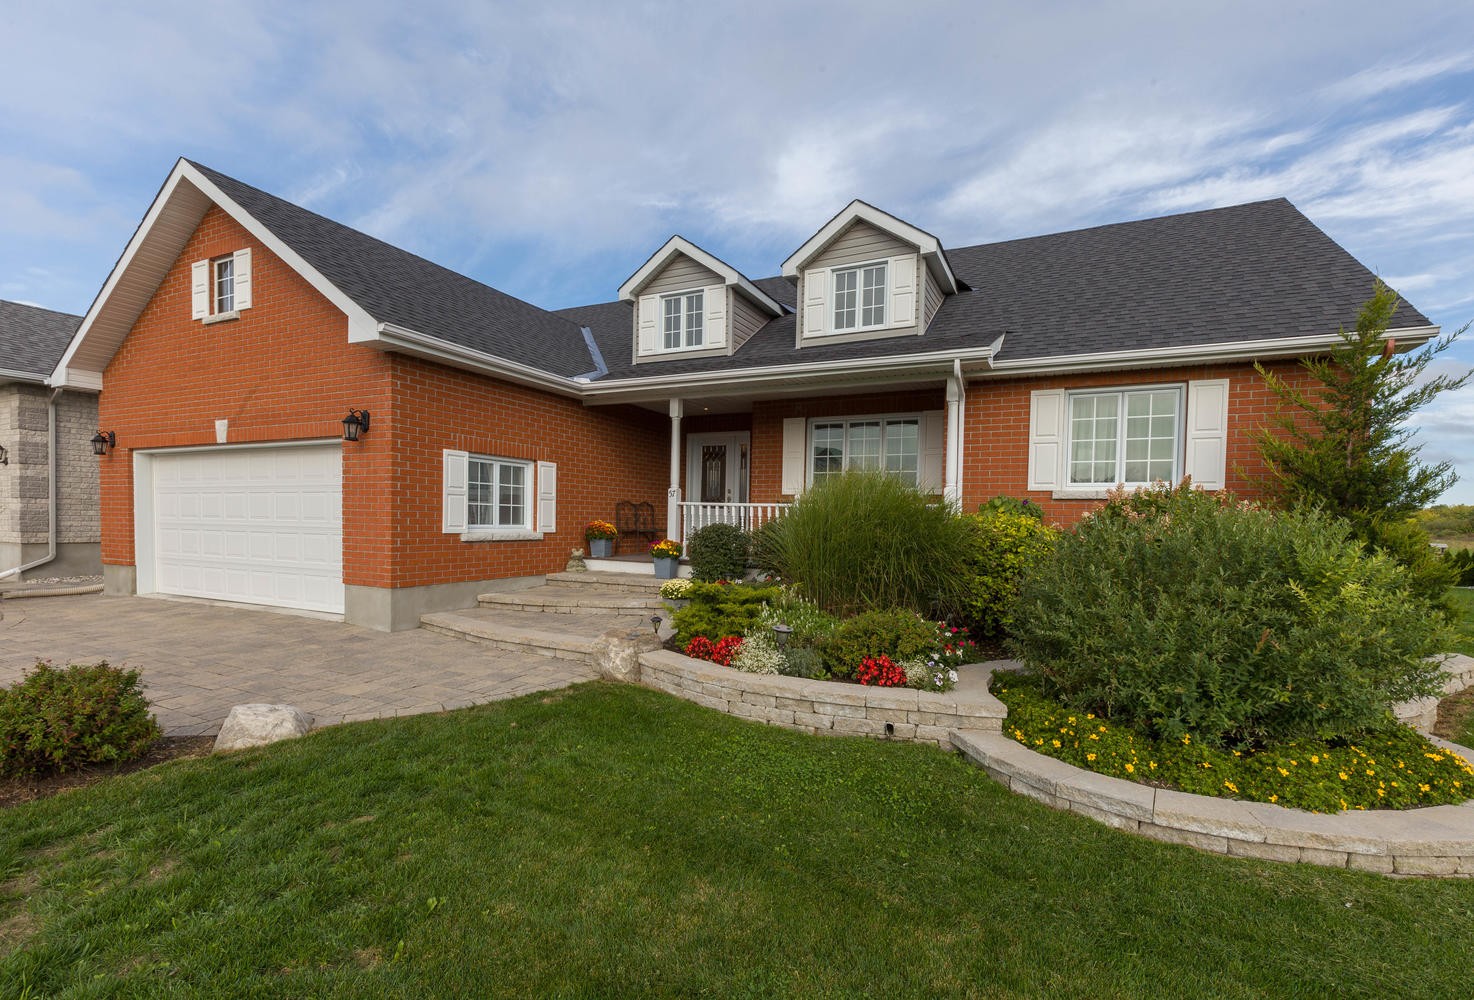 Walking up to this one just feels like home.  Interlock walk way and front steps, beautiful low maintenance landscaping surrounding it, a large front covered porch perfect for those morning coffees catching the sunrise.